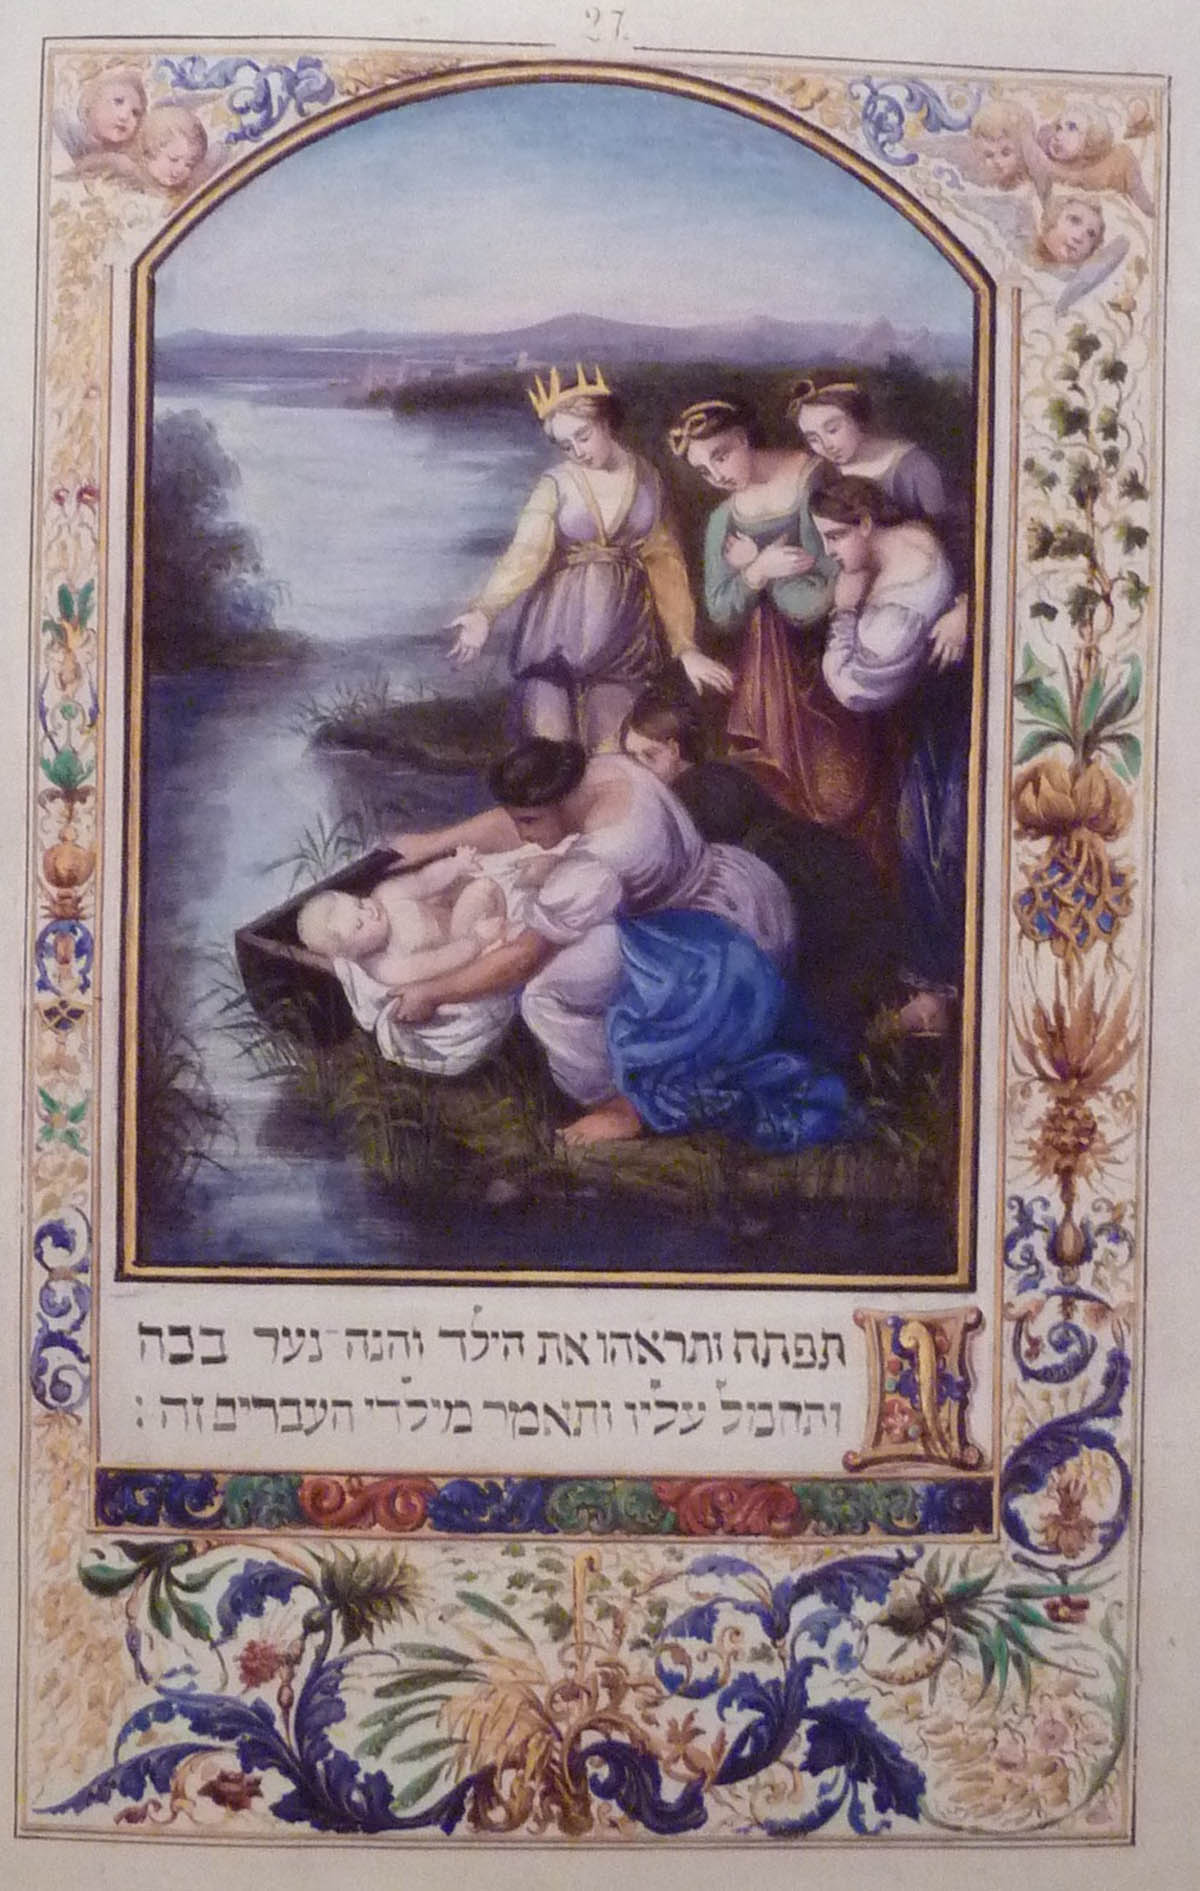 Finding Moses, Charlotte van Rothschild Haggadah, 1842 Courtesy The Braginsky Collection